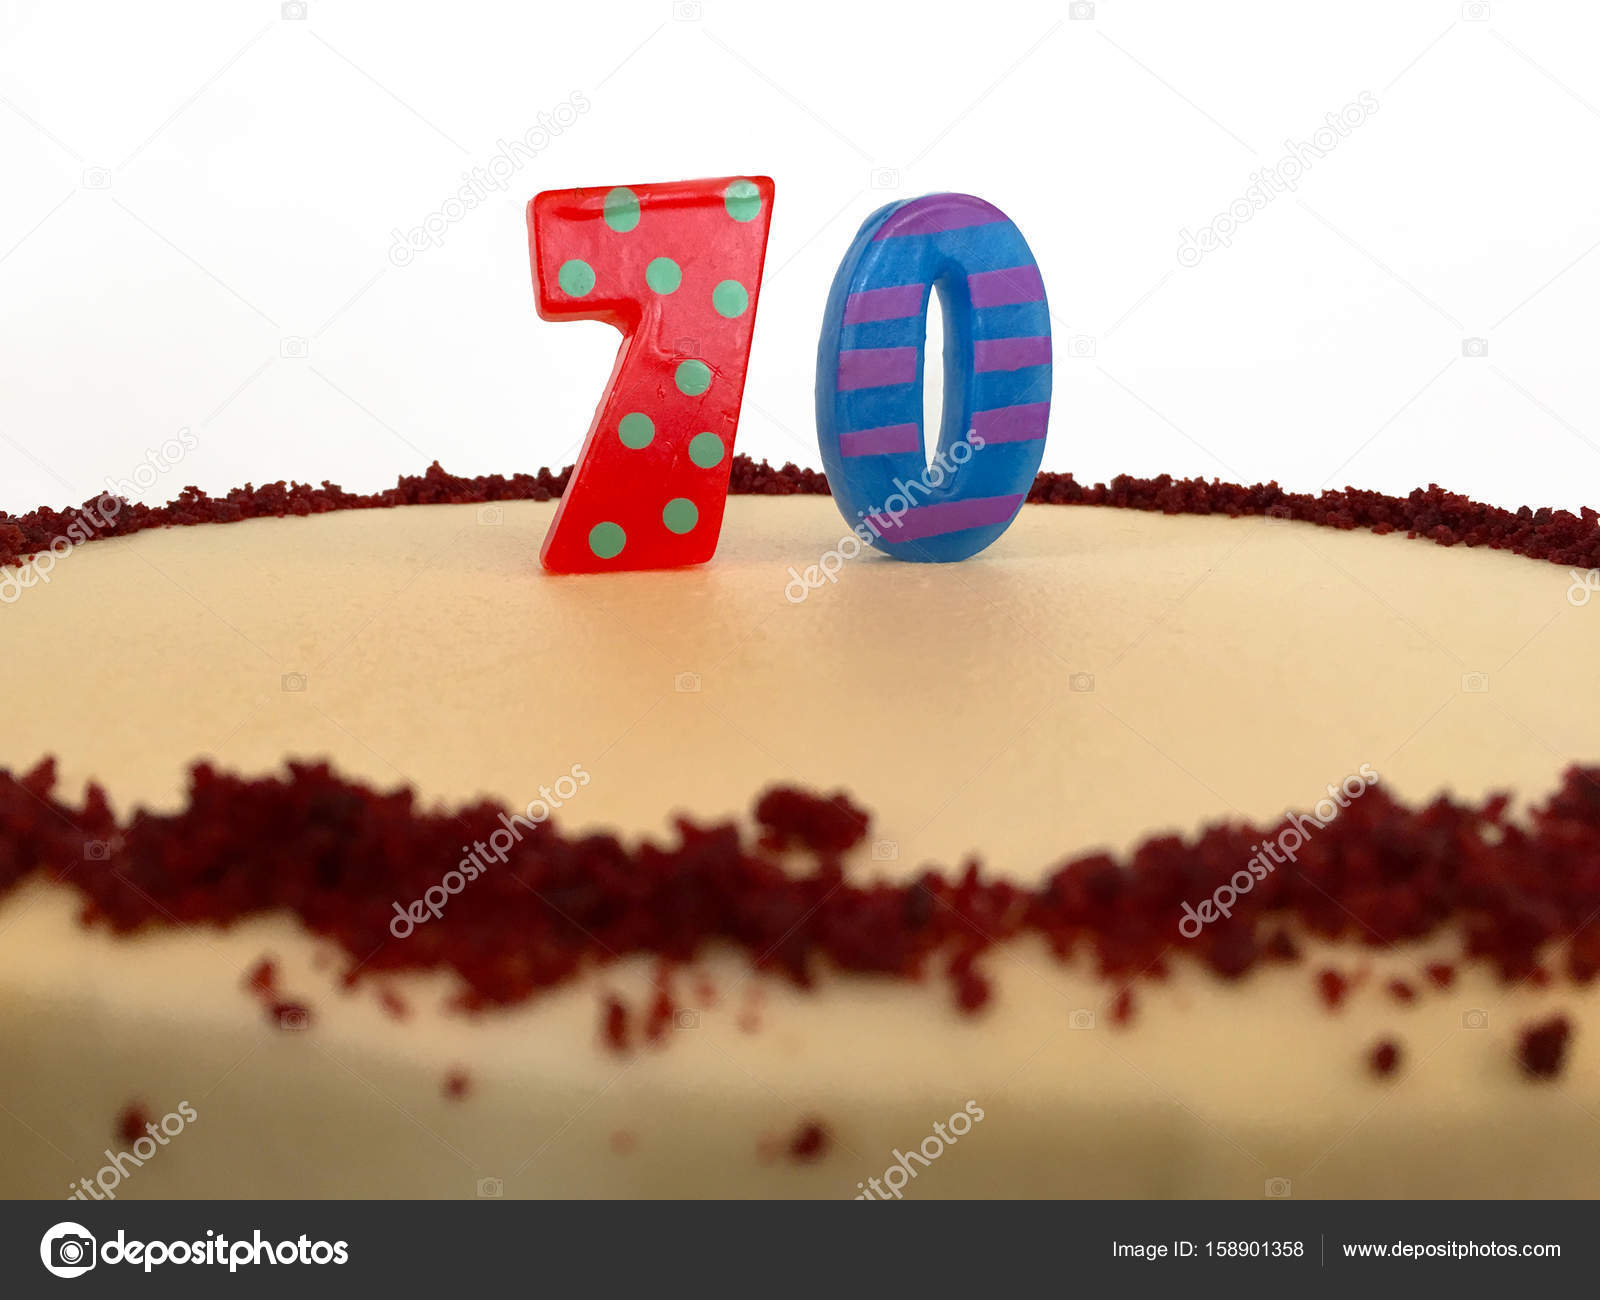 70th birthday cake stock photo lucidwaters 158901358 70th birthday cake stock photo biocorpaavc